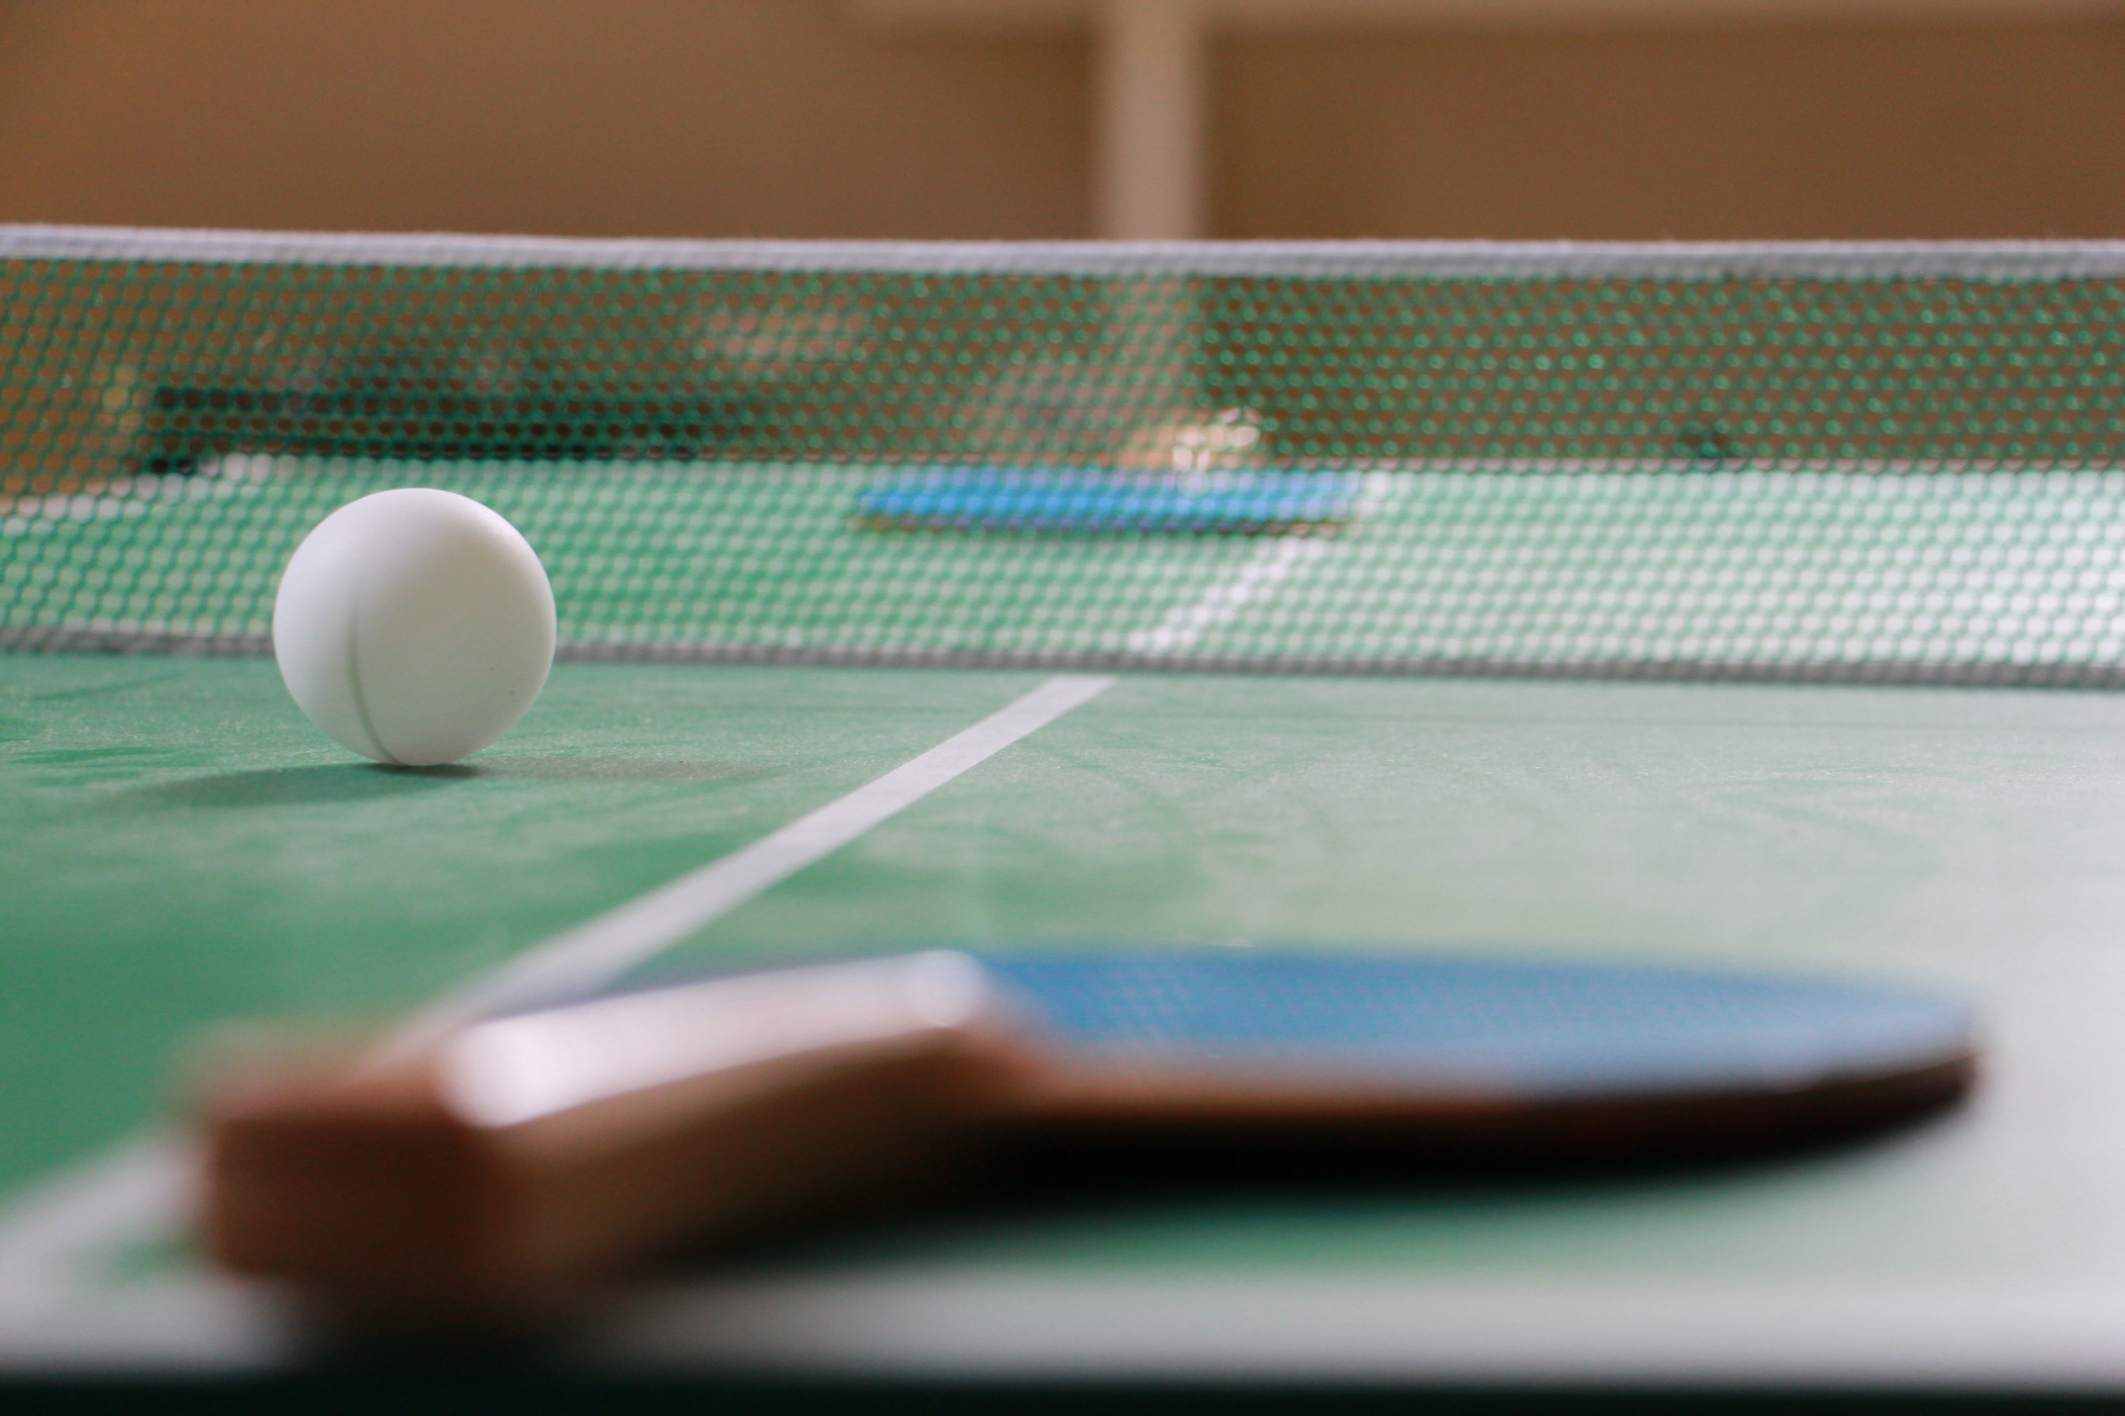 Ping Pong table with paddles and ball